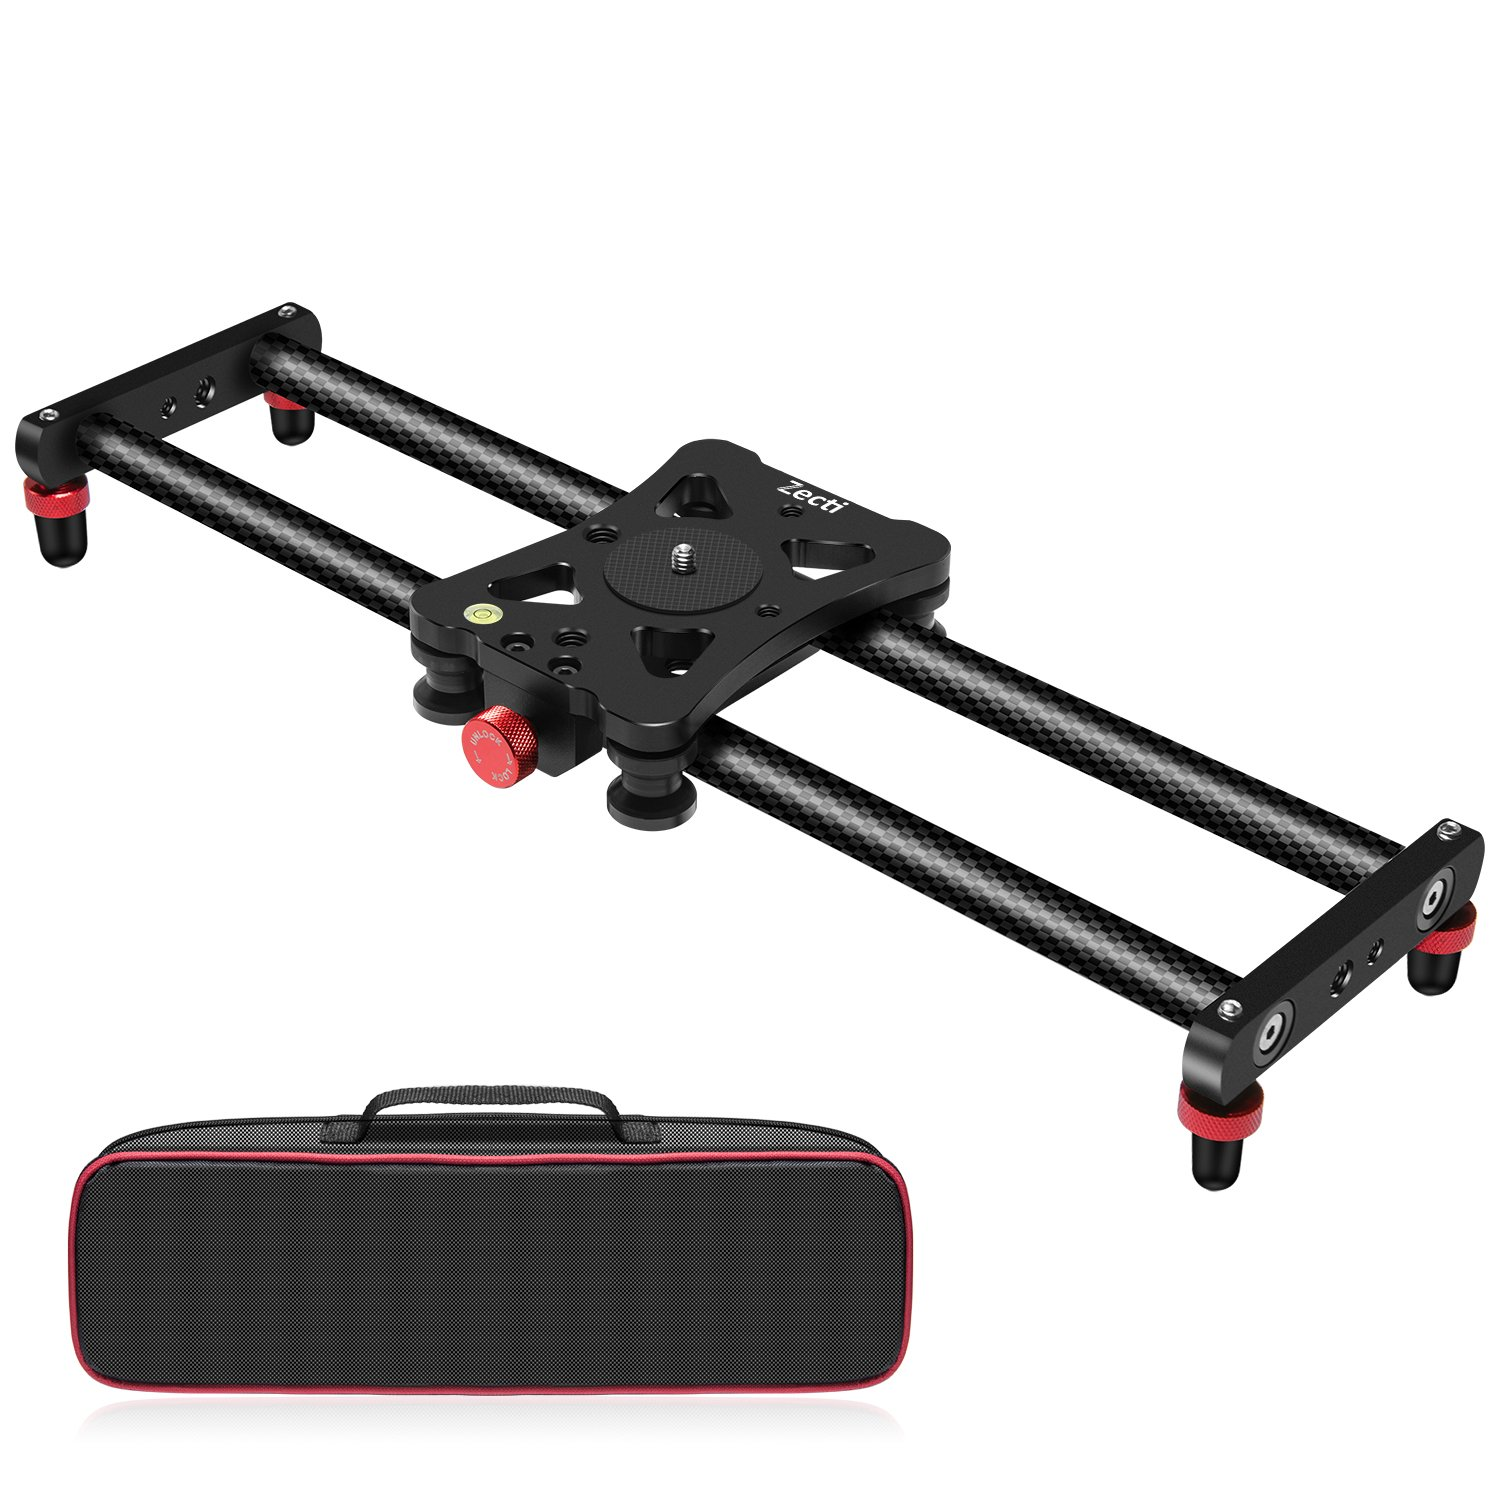 "Zecti 15.7"" Portable Carbon Fiber Camera Slider Dolly Track With 4 Roller Bearing for Video Movie Photography Making Stabilizing Nikon Canon Pentax Sony Cameras 11.02lbs Loading"